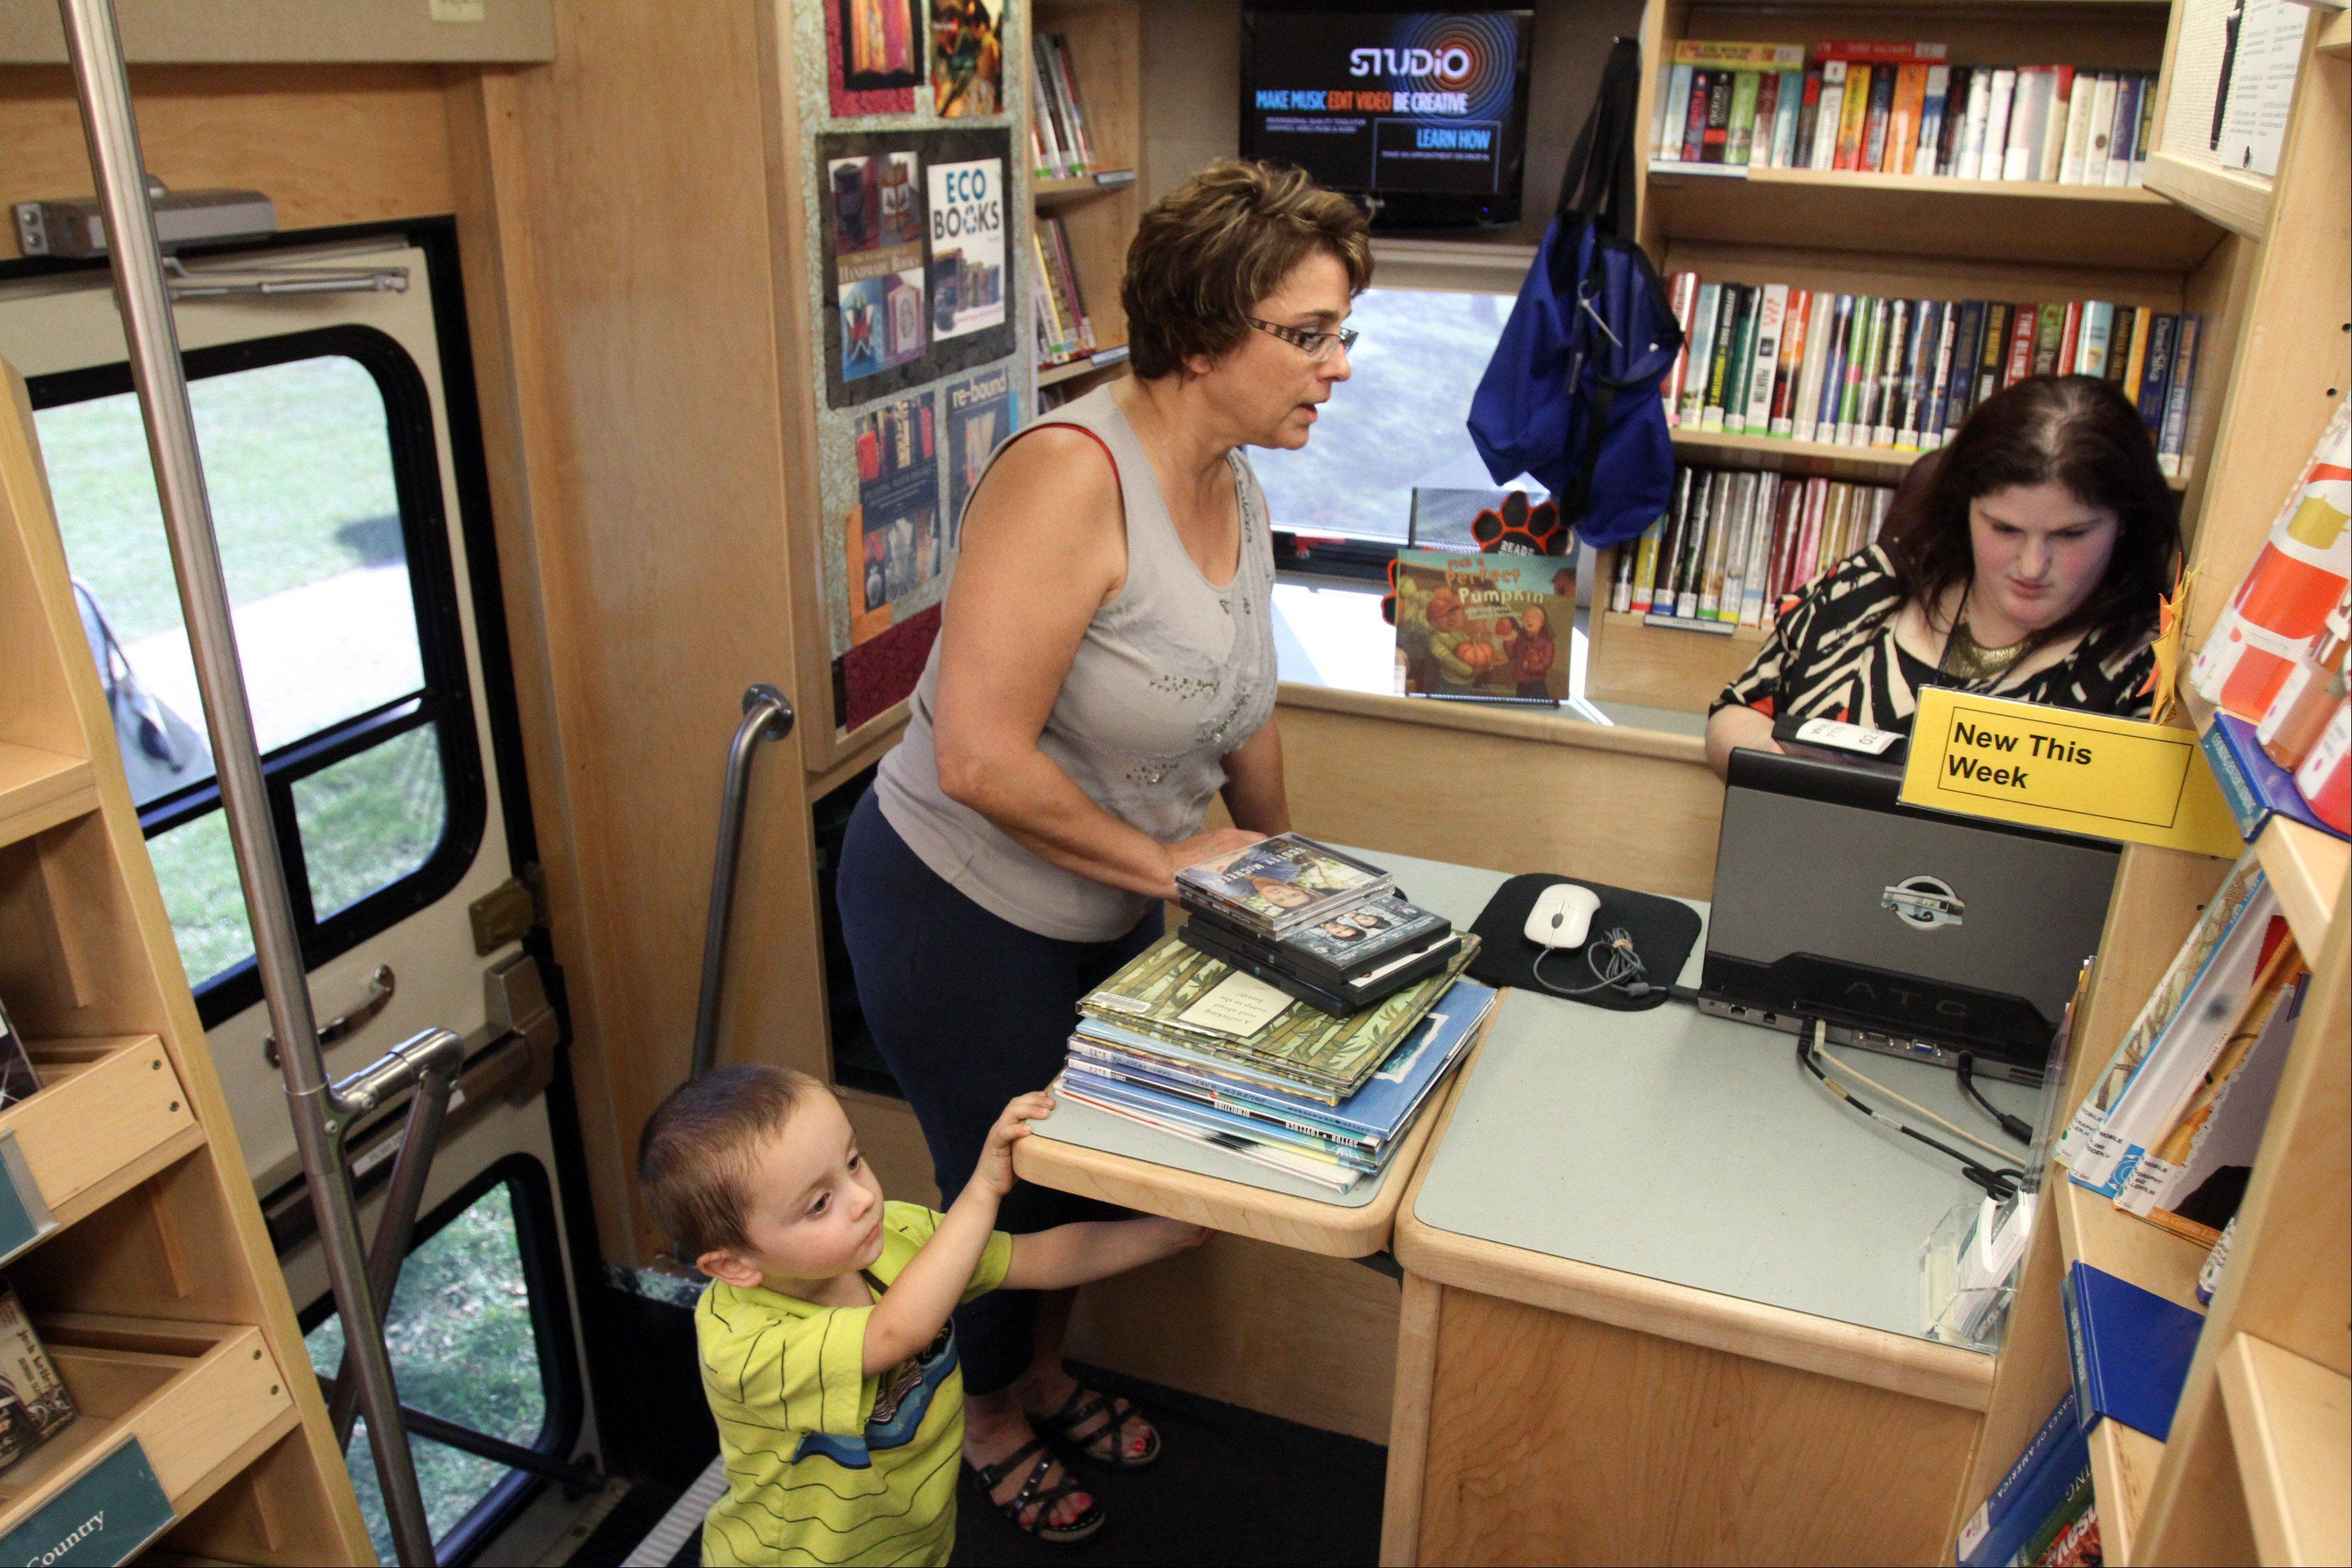 Liz Wojtkowski and her grandson, Tyler, 3, check out a stack of children's books from bookmobile assistant Amy Henkels in the Arlington Heights Memorial Library bookmobile parked near Olive-Mary Stitt Elementary School on Sept. 12.